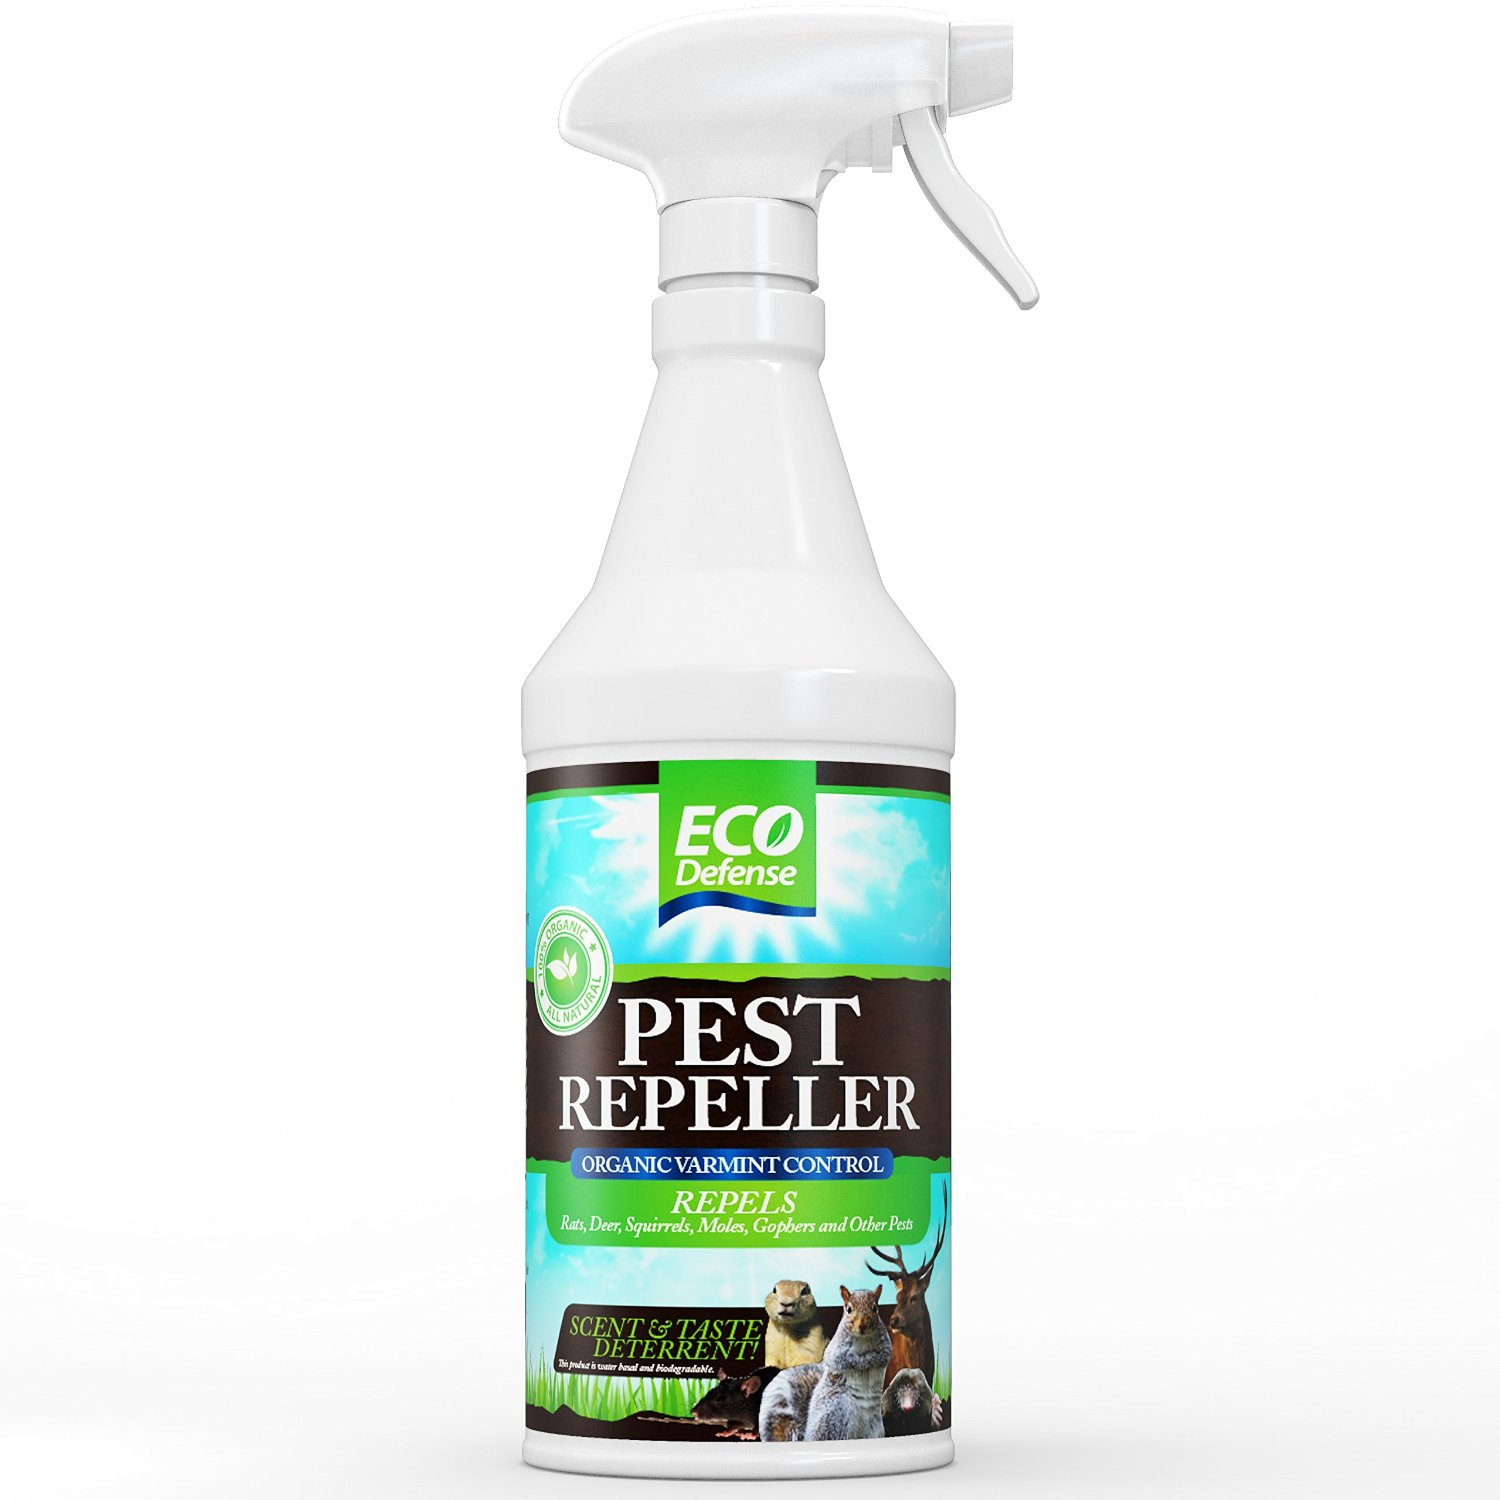 eco defense ★★★ eco defense home pest control - 2017 guide to emergency survival in america @ eco defense home pest control @ watch free video now (recommended) - larry.